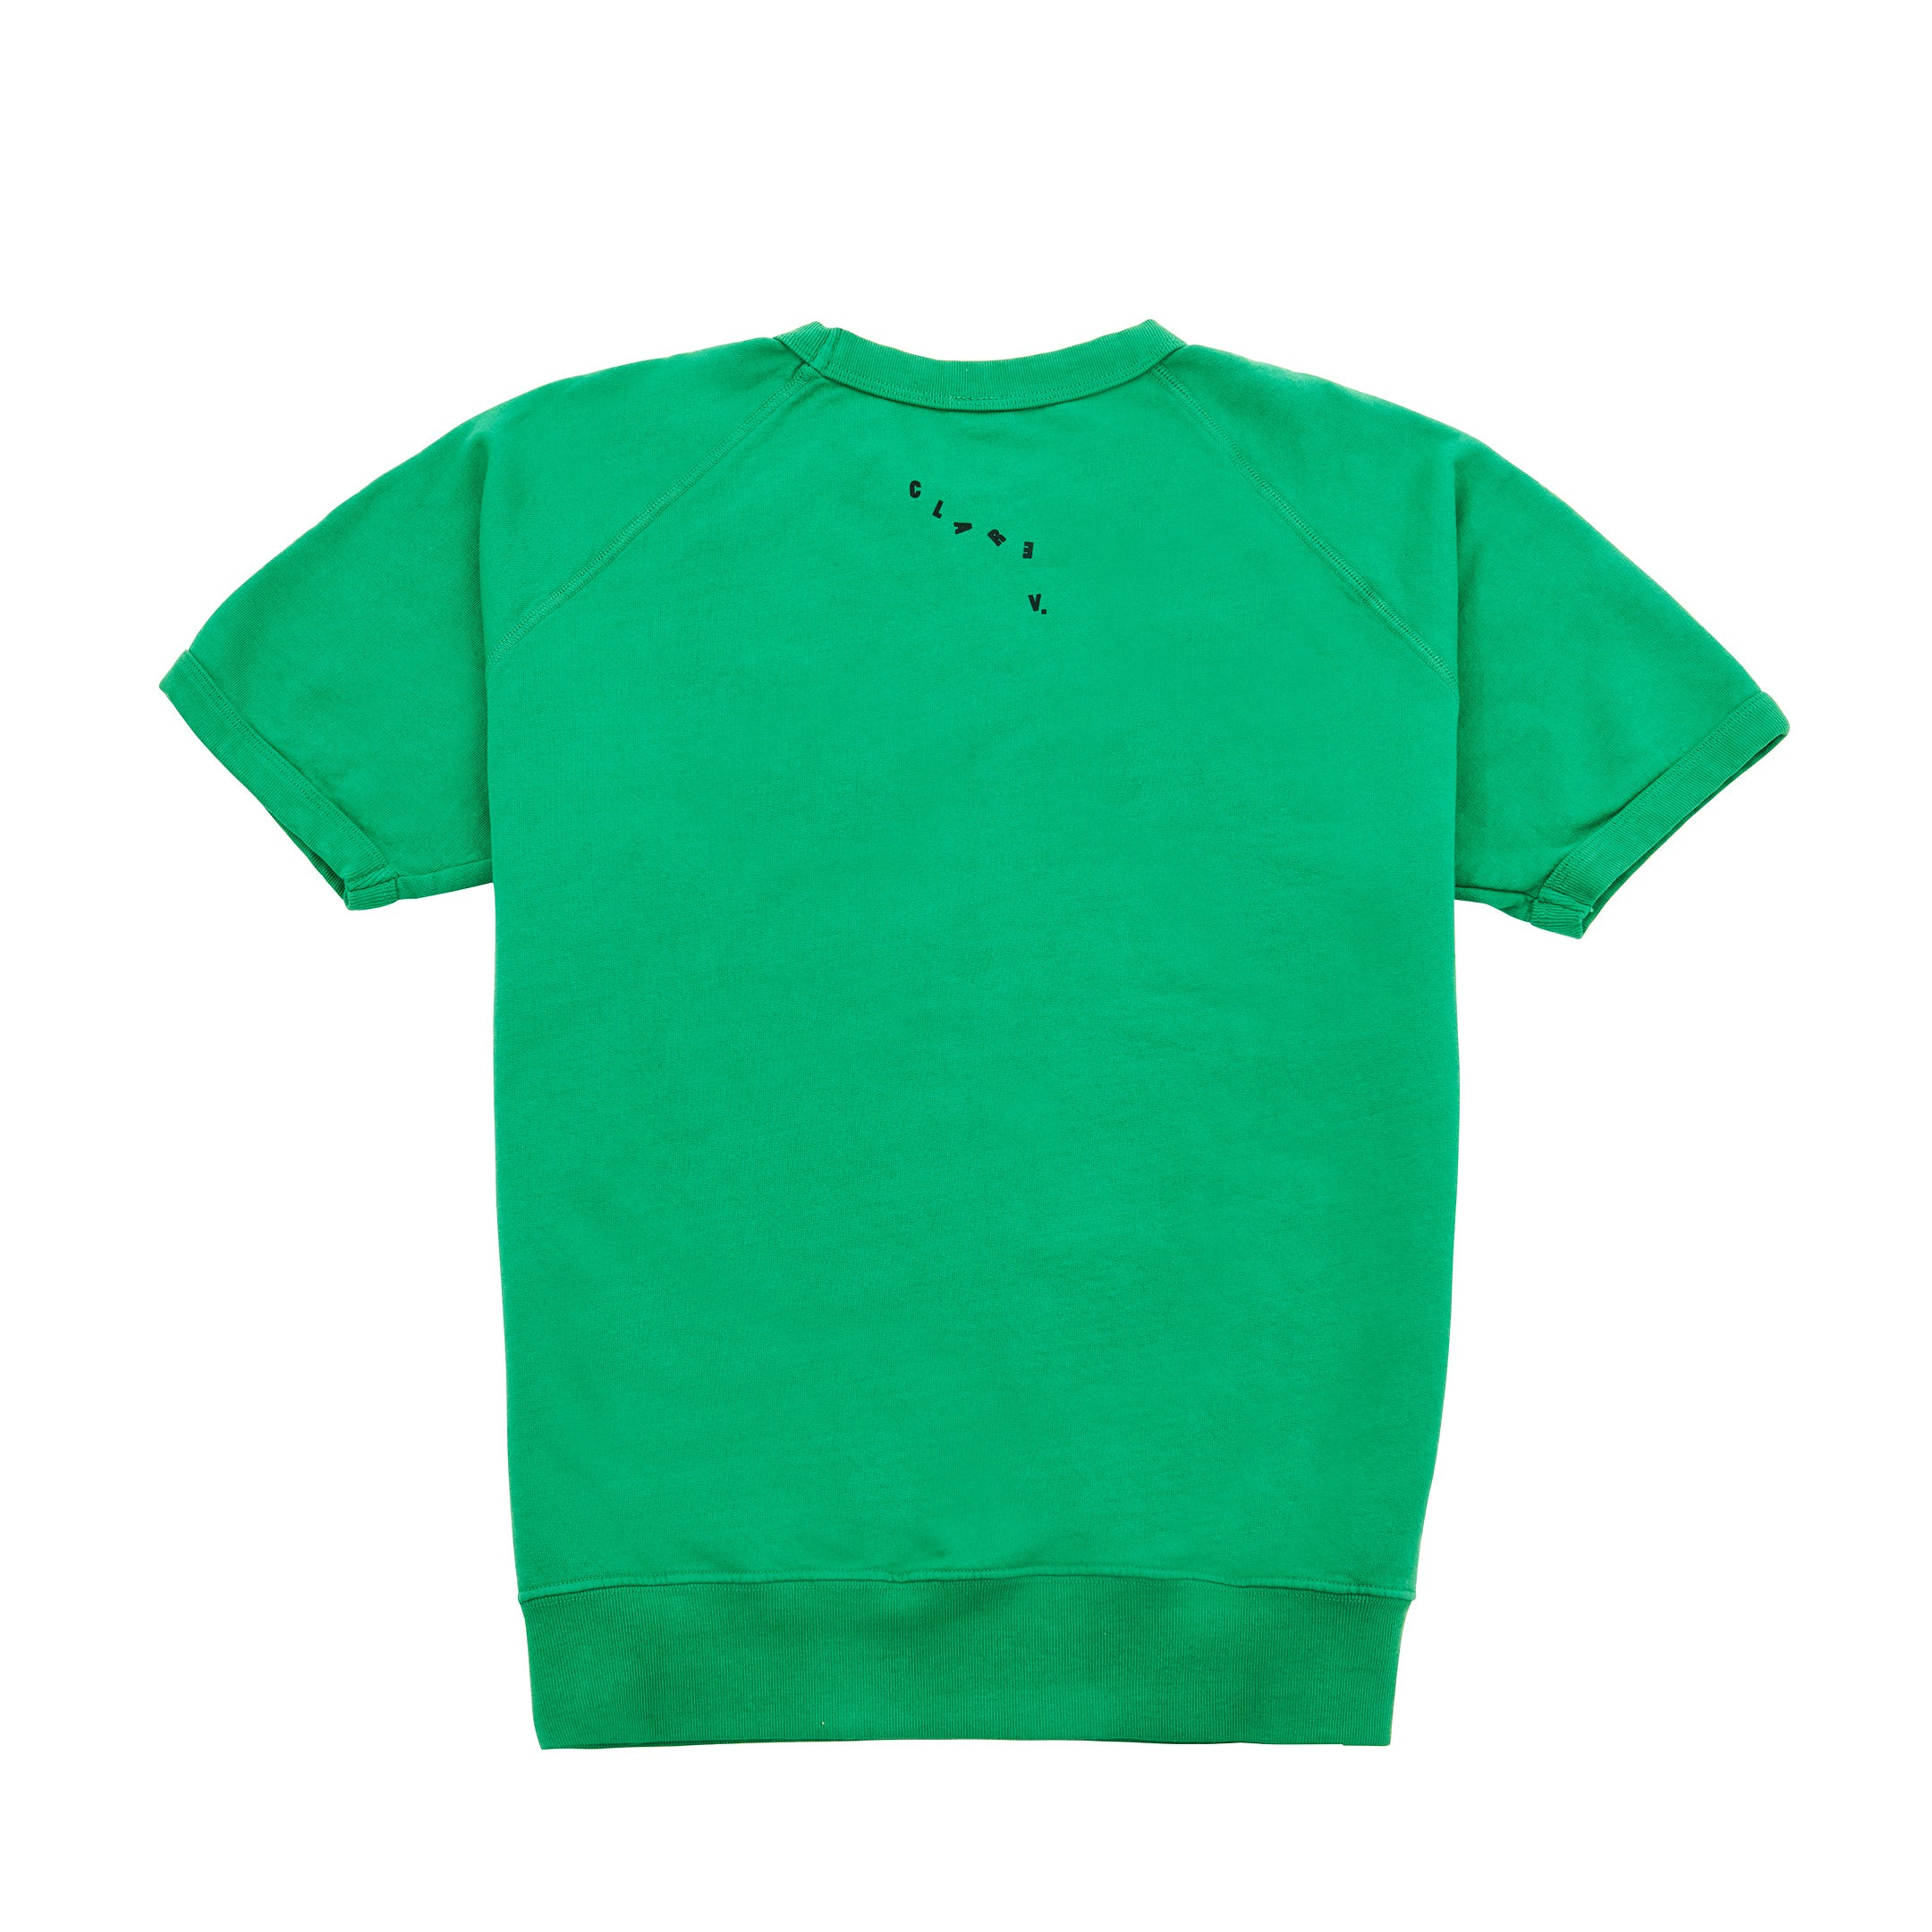 Green Tout Va Bien Short Sleeve Sweatshirt - Back